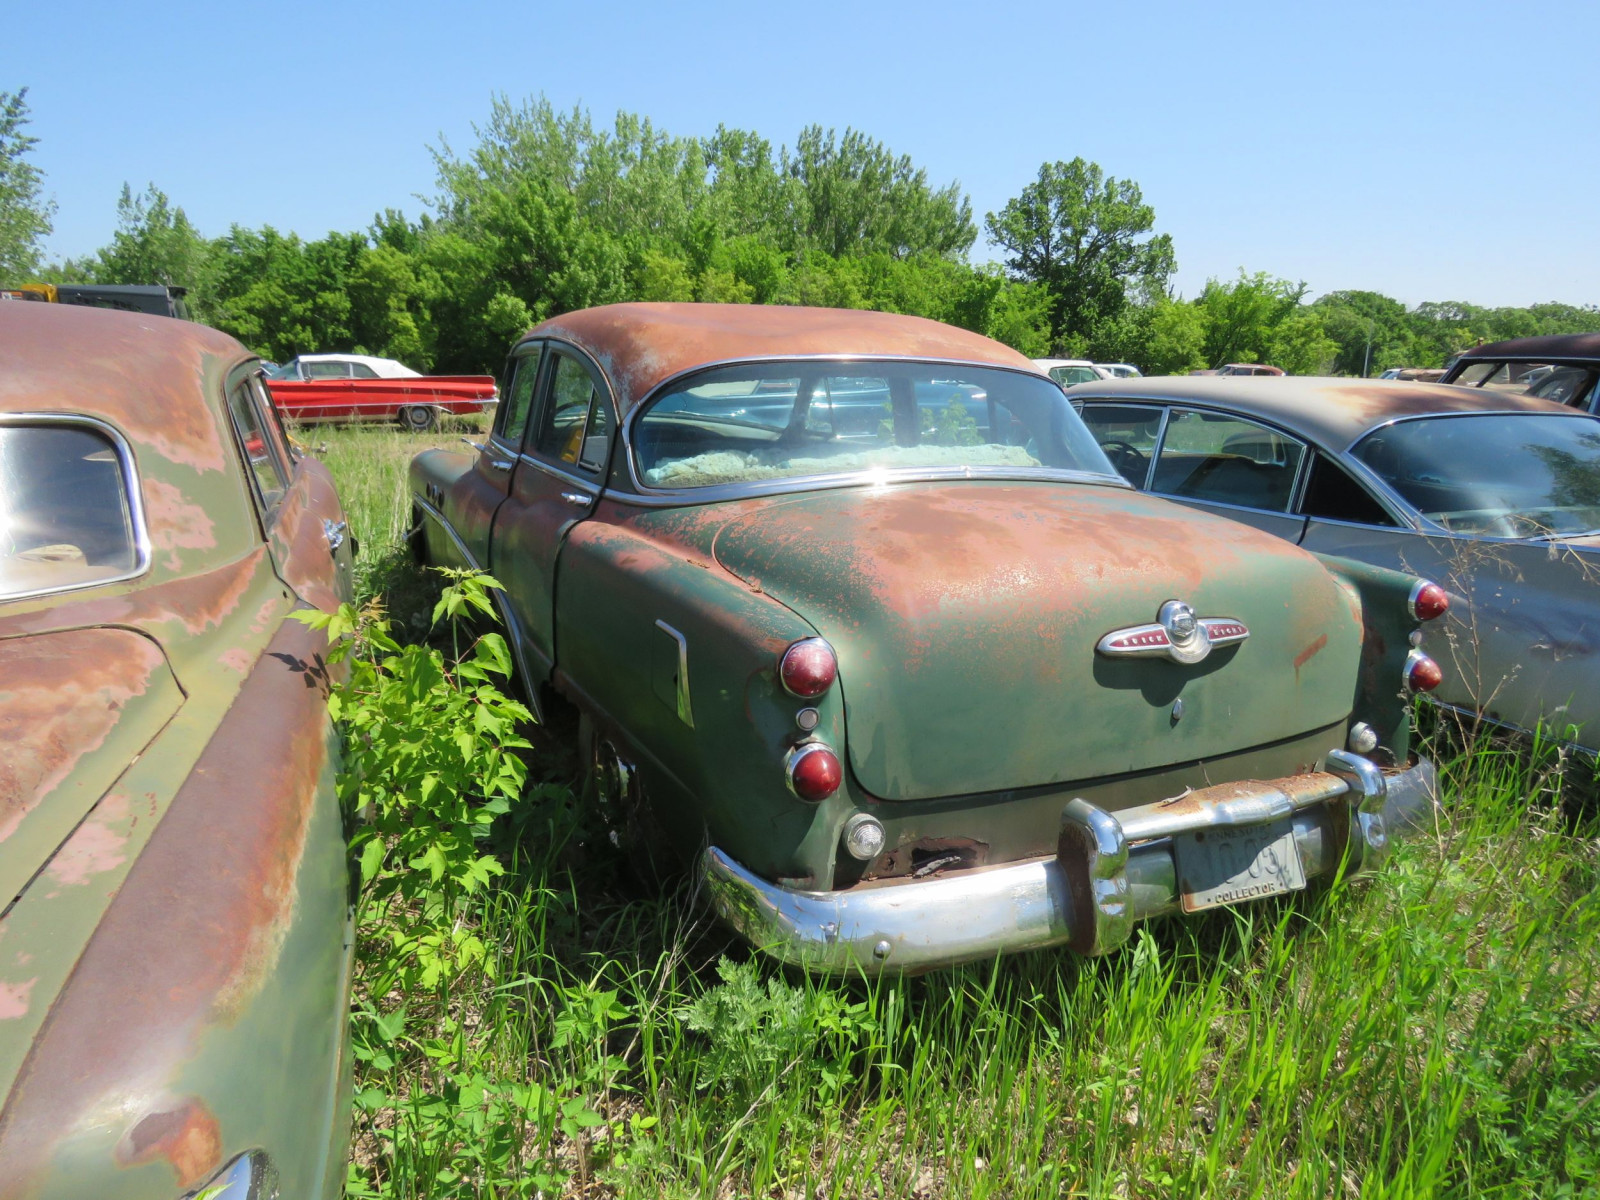 1953 Buick 8 4dr Sedan for Project or parts - Image 4